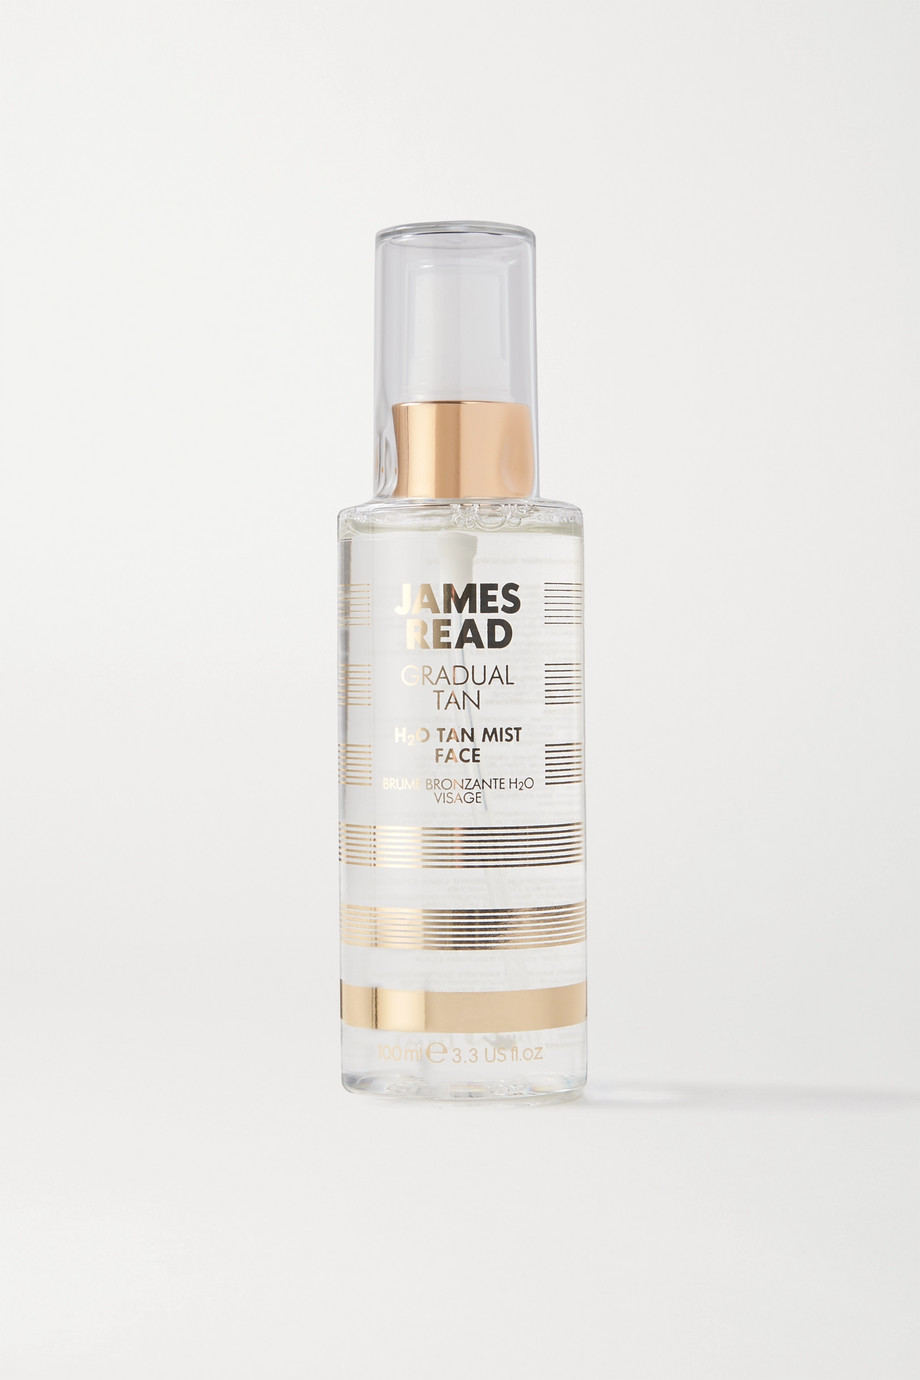 James Read H20 Tan Mist, 100ml